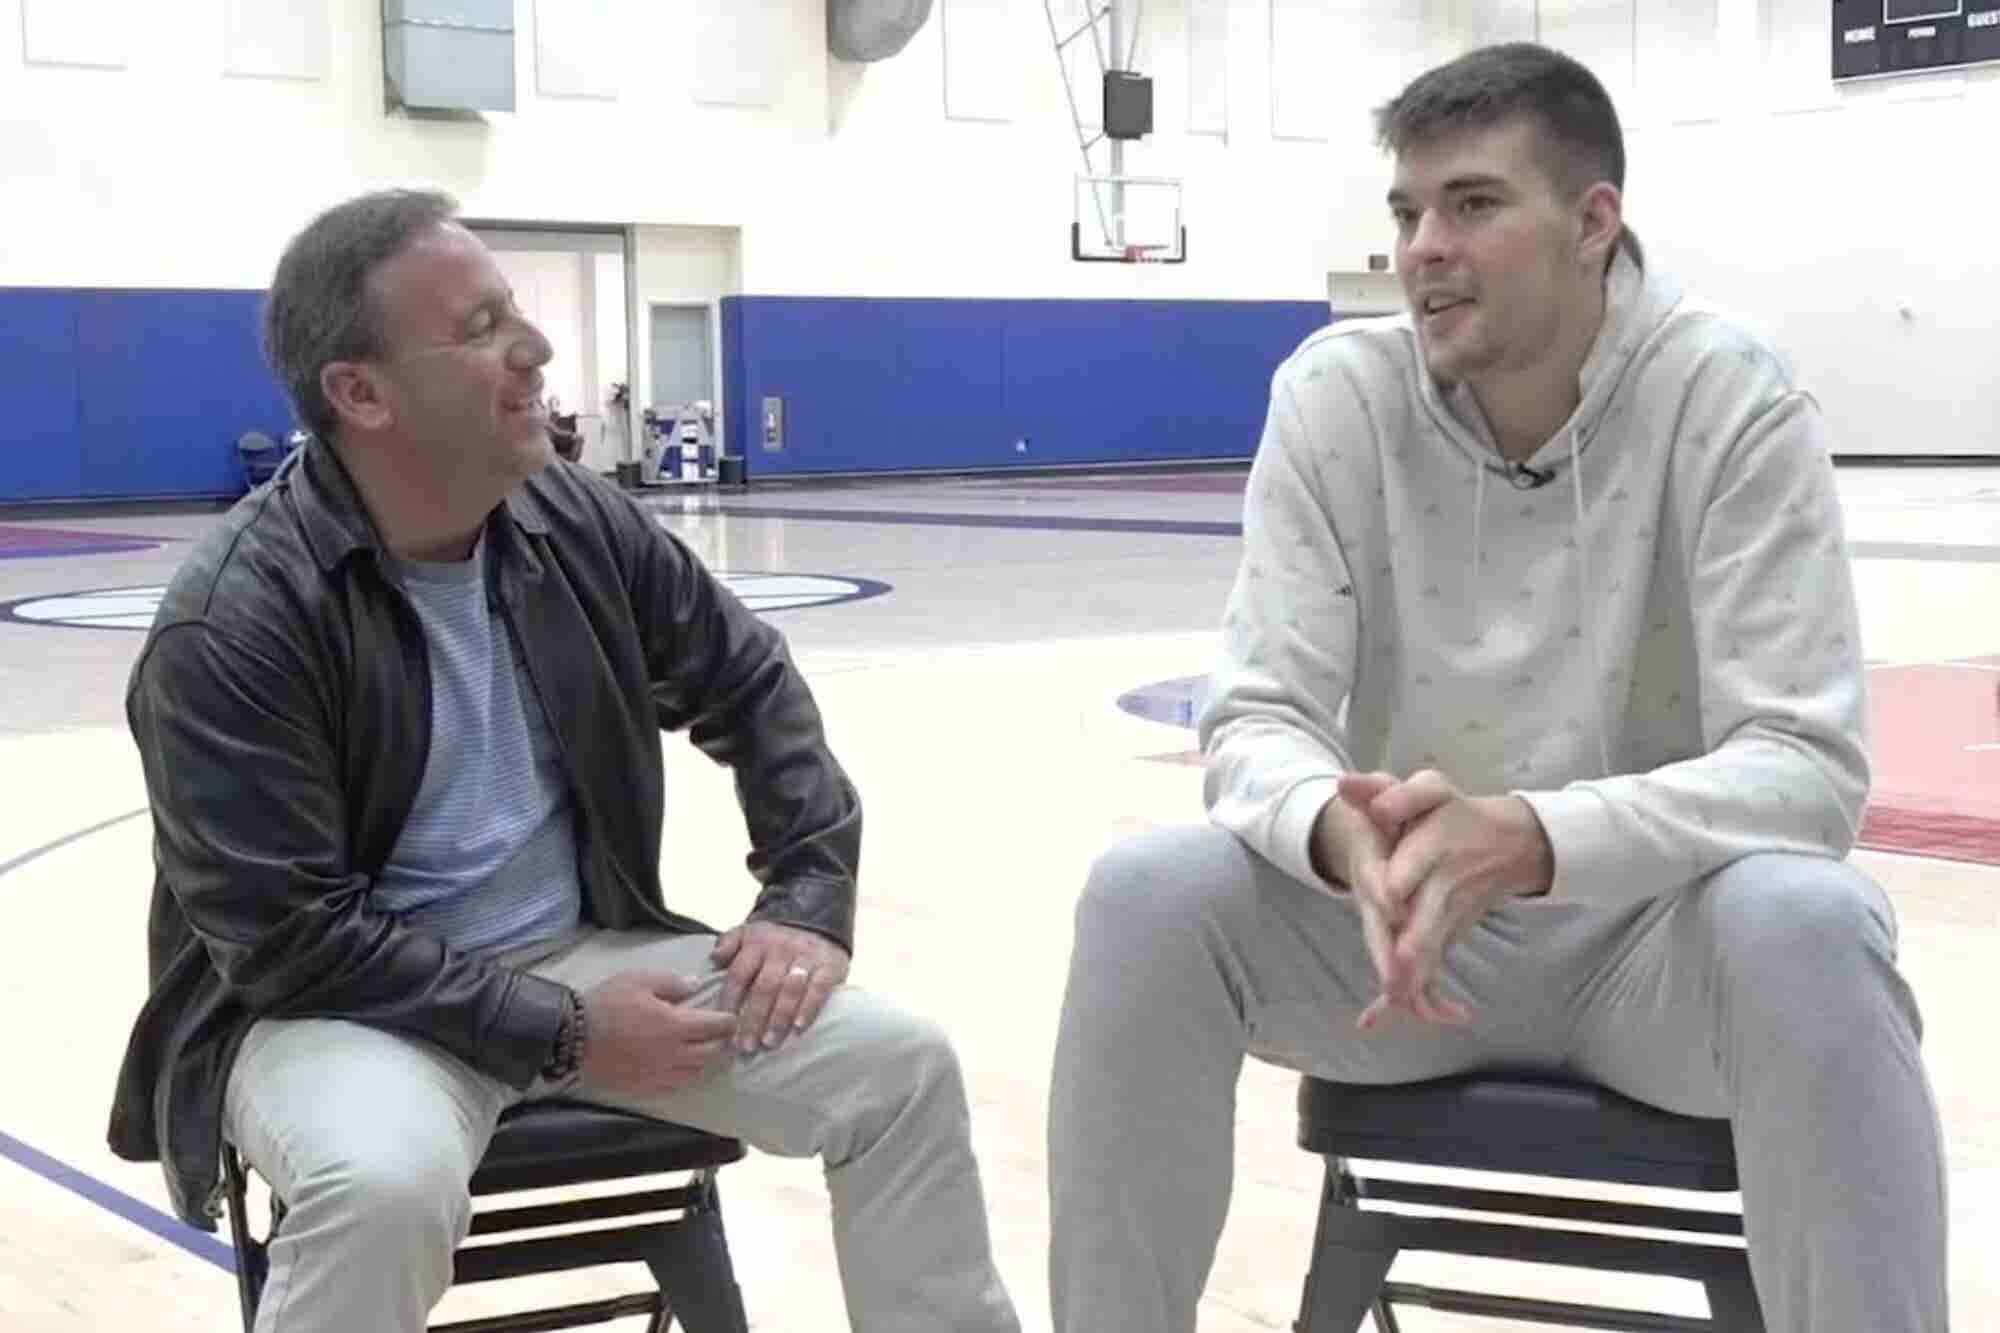 How This Croatian Basketball Player Made His NBA Dream Come True